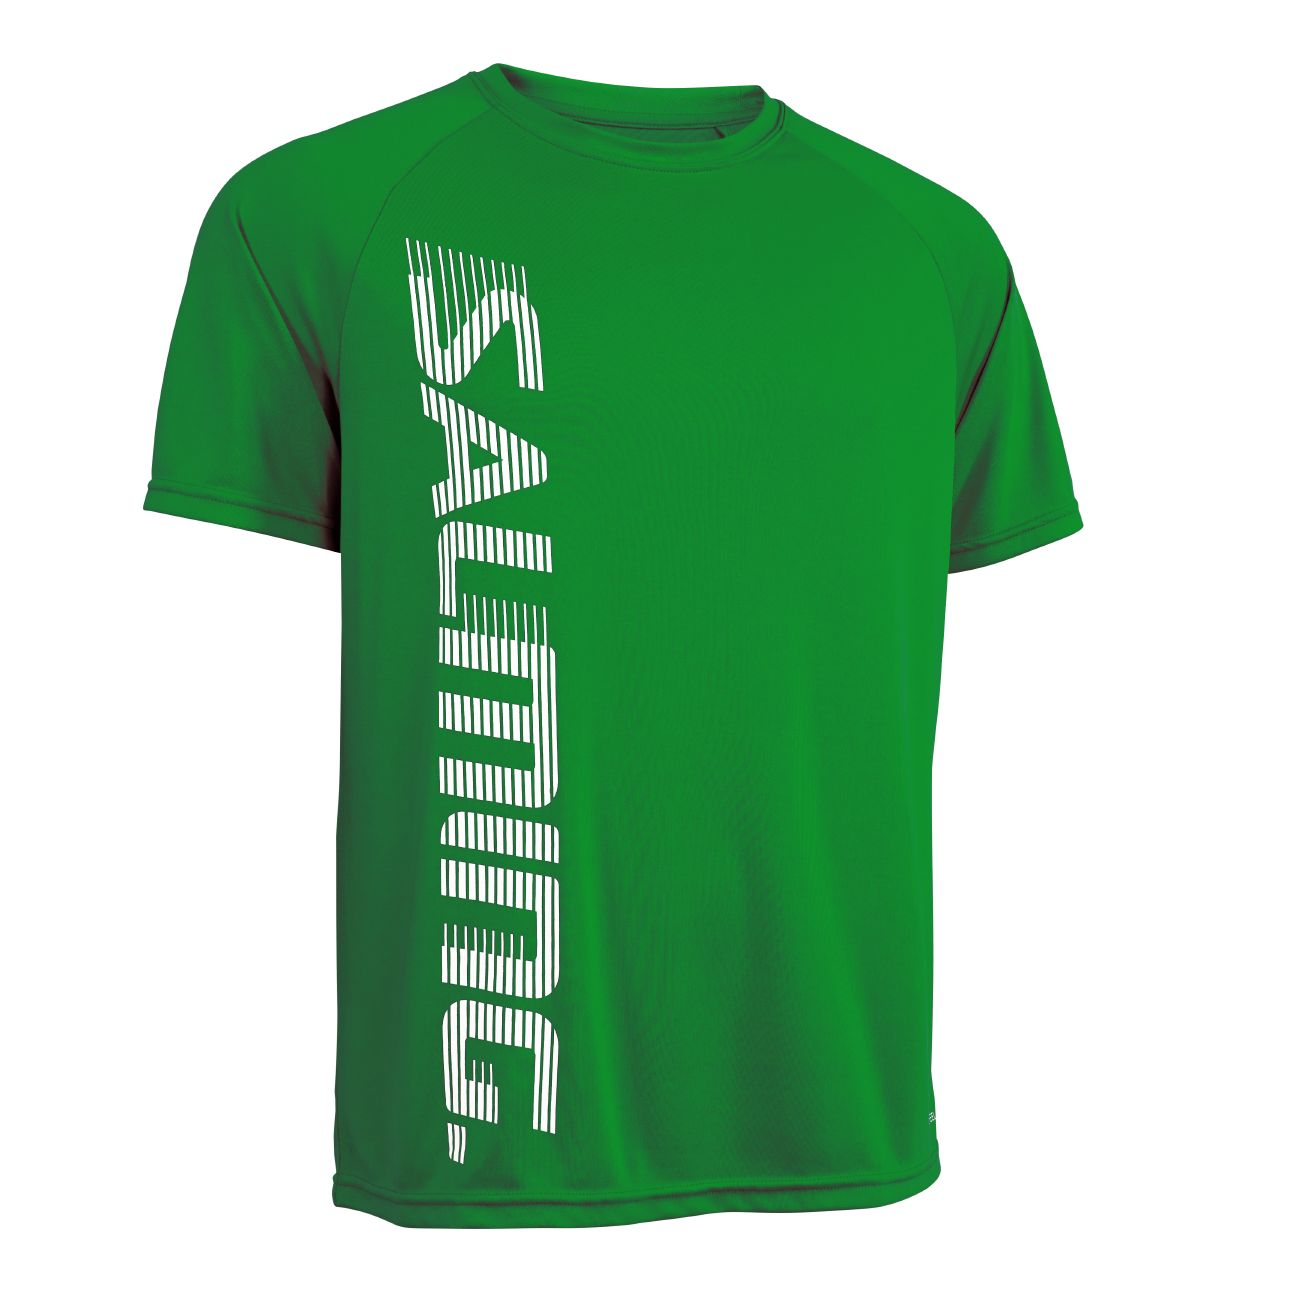 Salming Training Tee 2.0 Zelená, 164